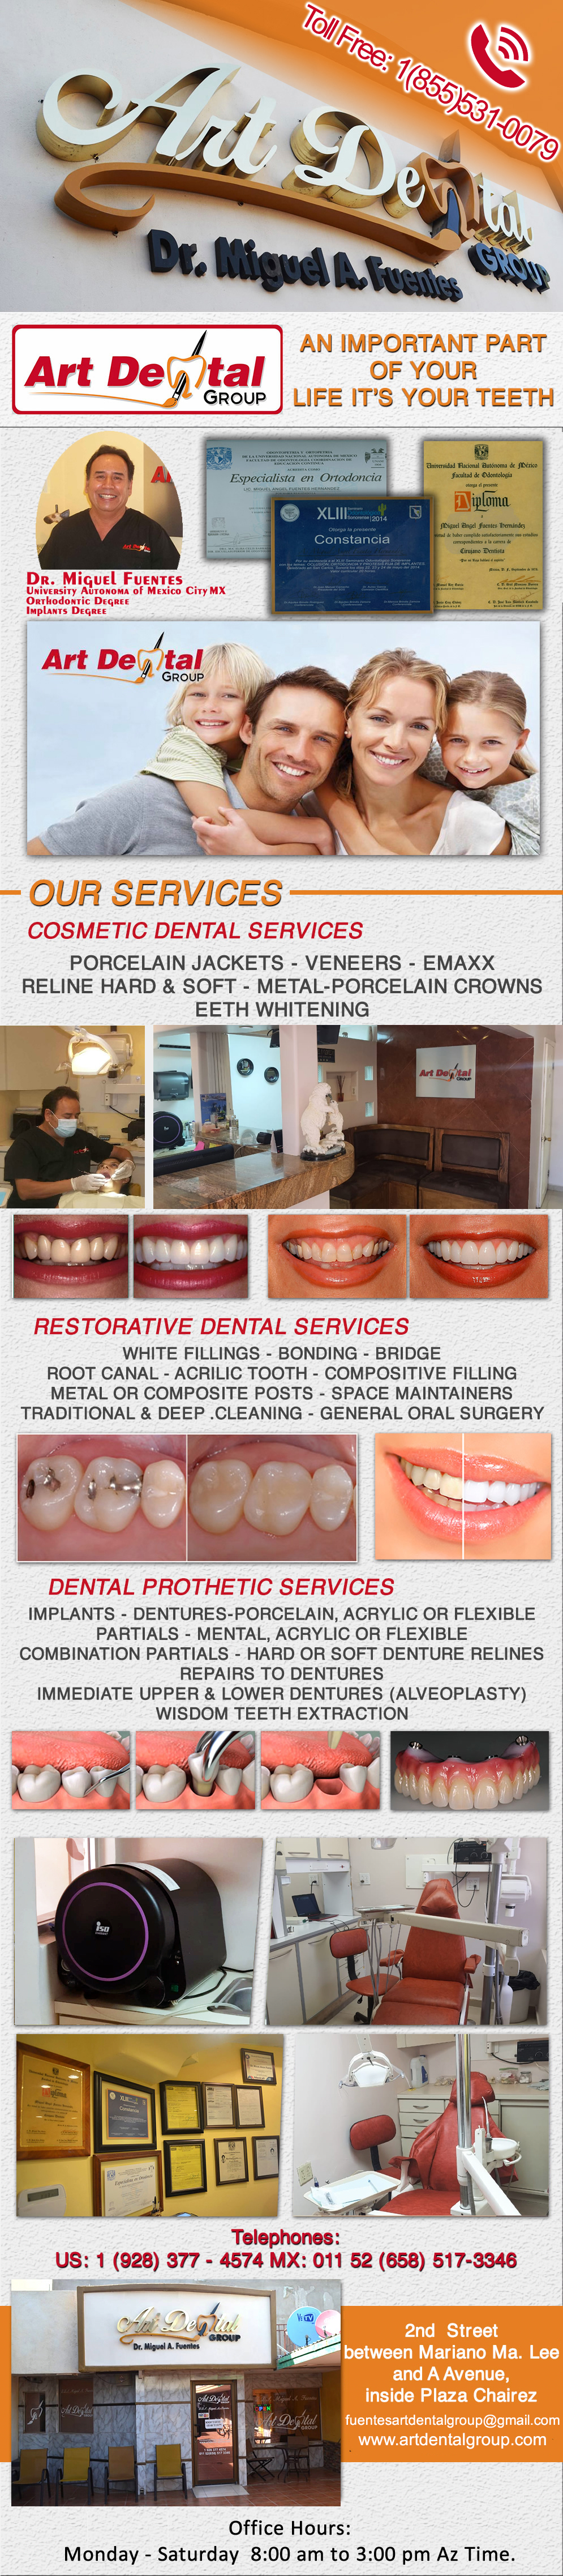 Art Dental Group Dr. Miguel A. Fuentes D.D.S. in Algodones  in Algodones  DENTAL PROSTHETIC SERVICES: